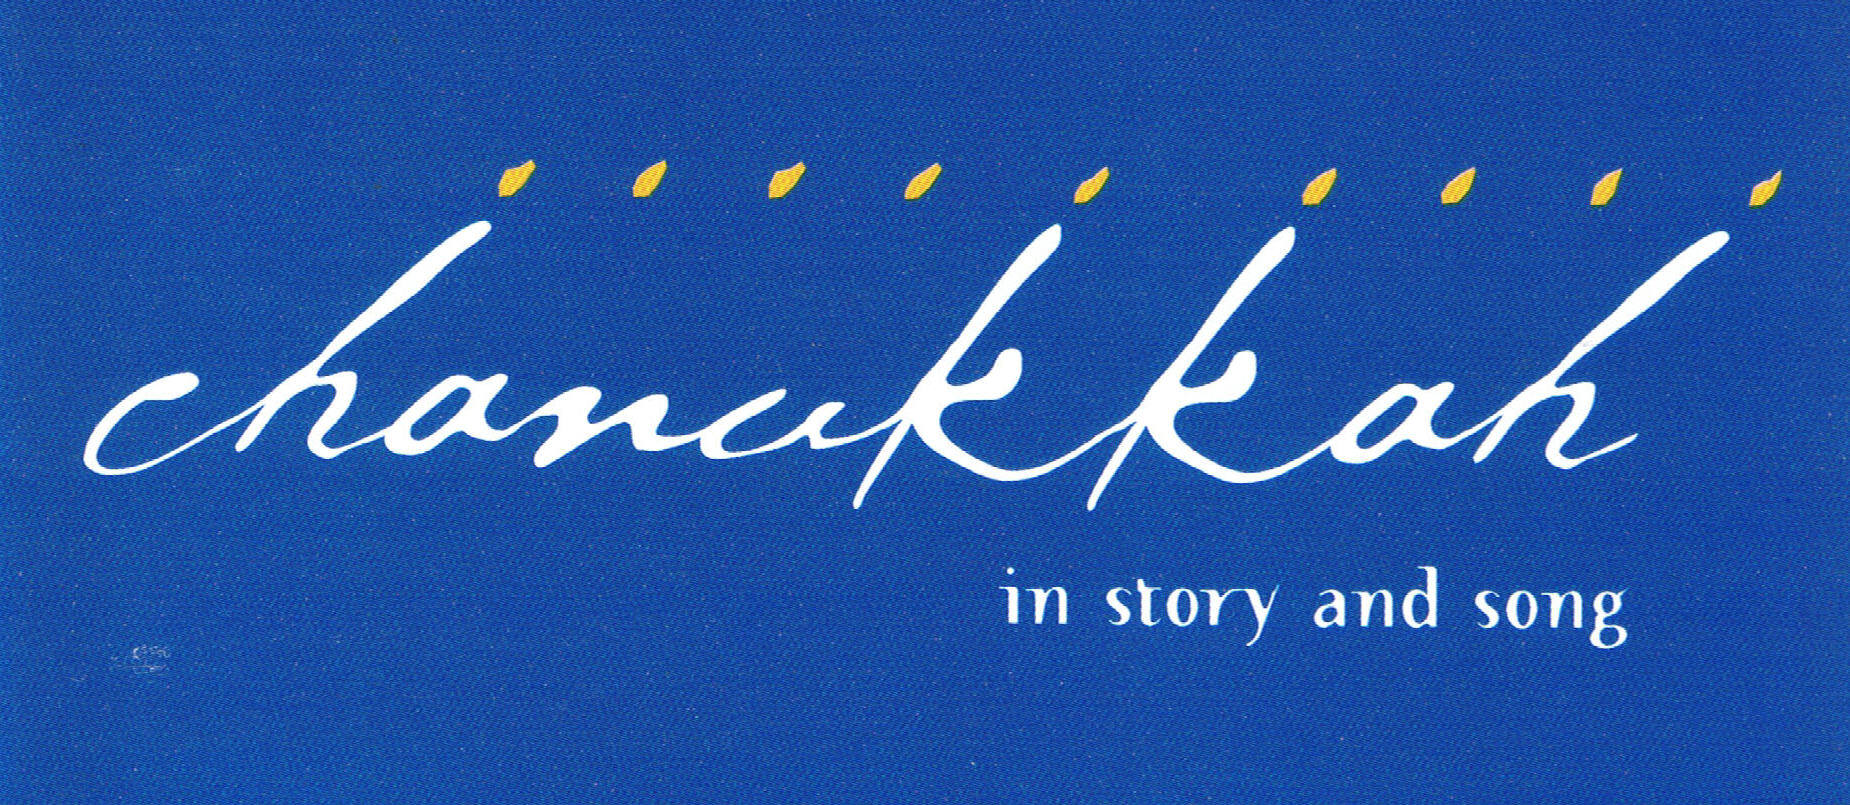 Caption: Chanukkah In Story & Song